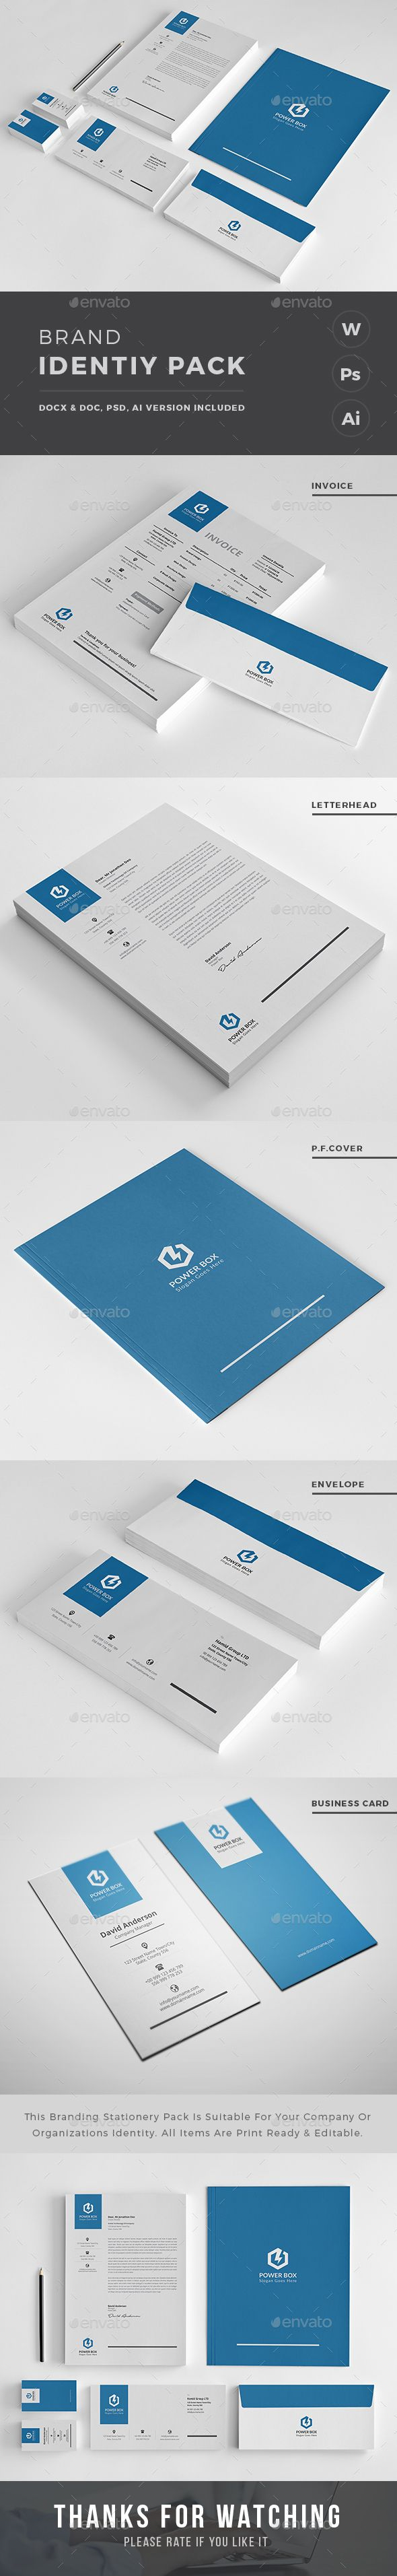 9 best Corporate Identity Pack images on Pinterest